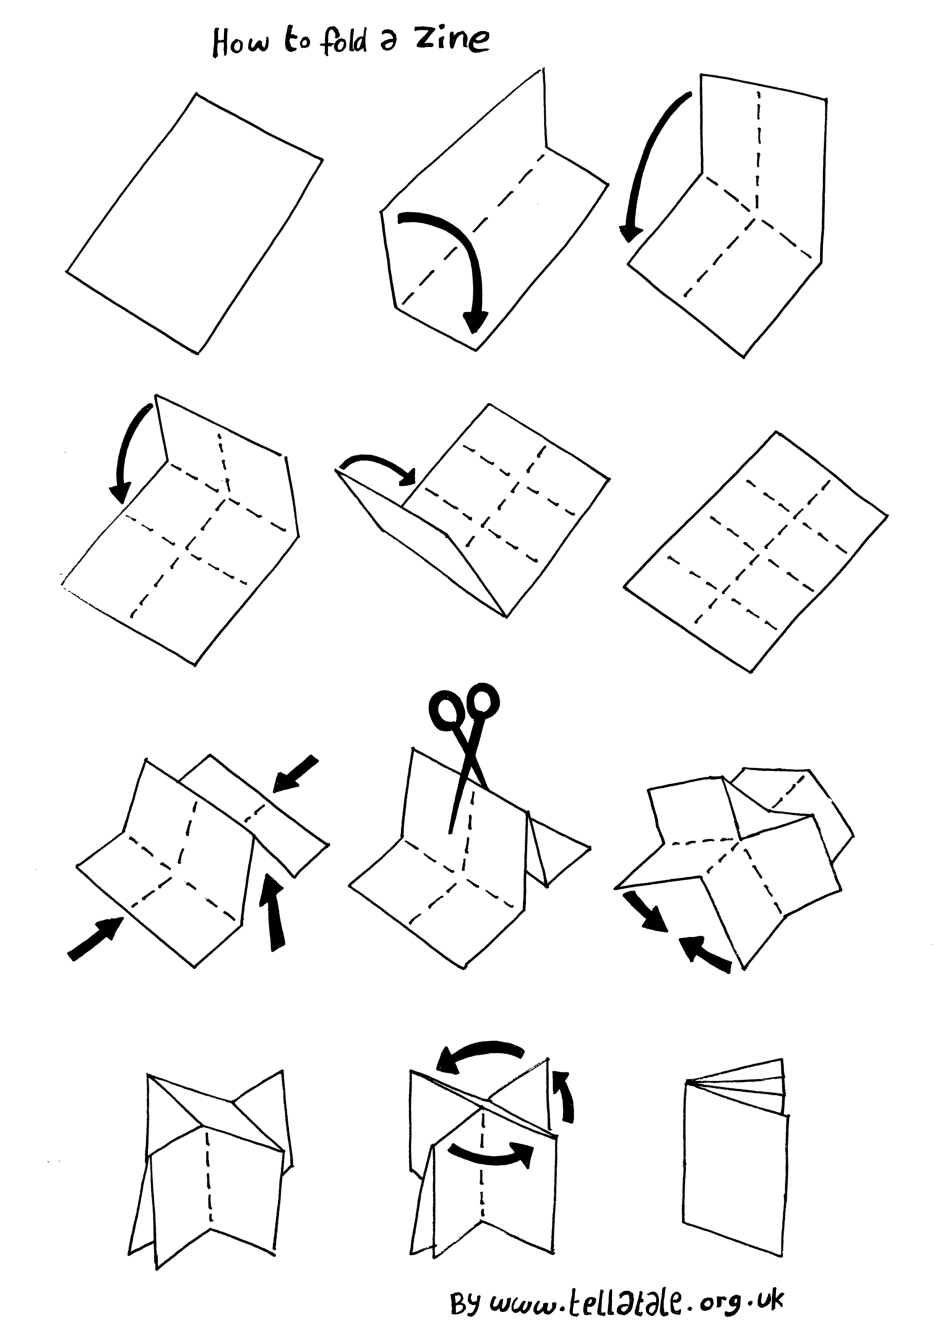 Diagram of how to fold a pocket zine: fold a letter-sized paper into 8 sections, cut down the middle, &fold down the middle.